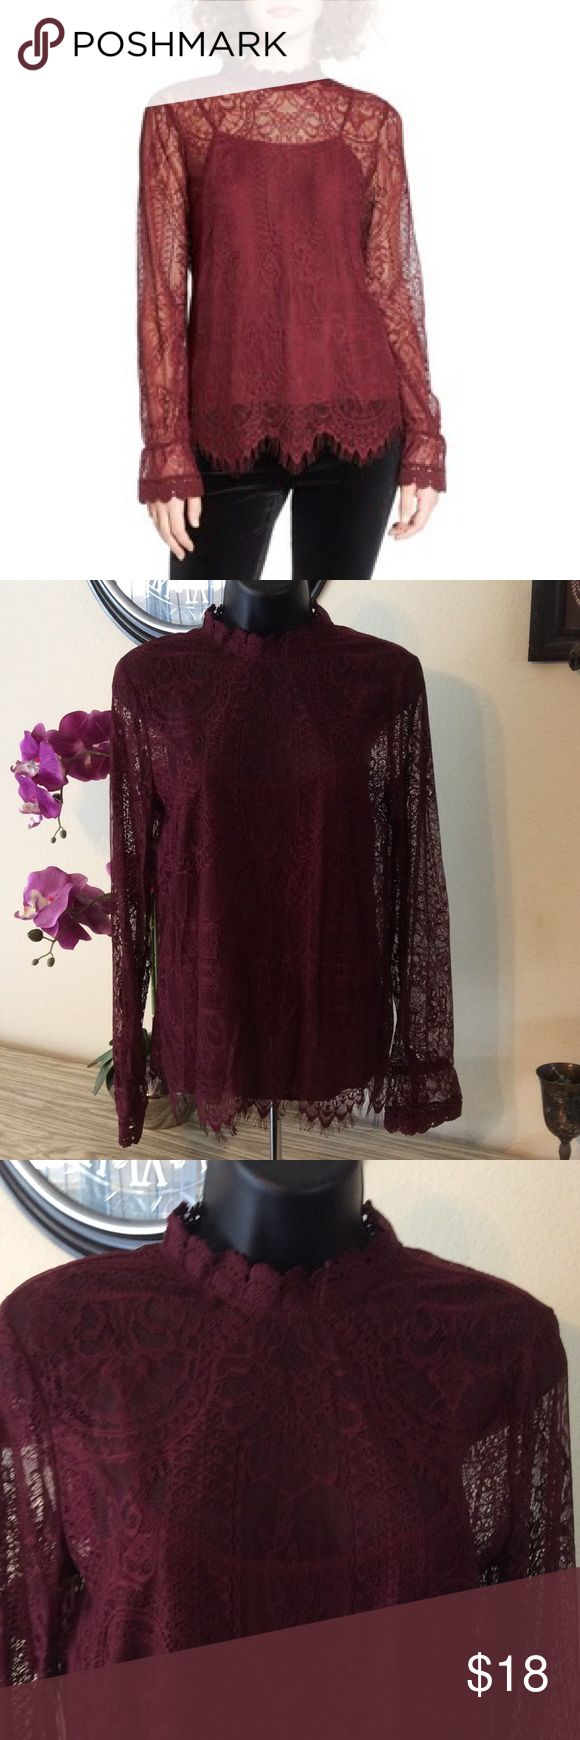 "🆕 Lace Top Gorgeous burgundy lace Top! No stains or rips. Camisole comes with it. Elastic on bells of sleeves. Ties in back. 17"" from armpit to armpit. Wayf Tops Blouses"